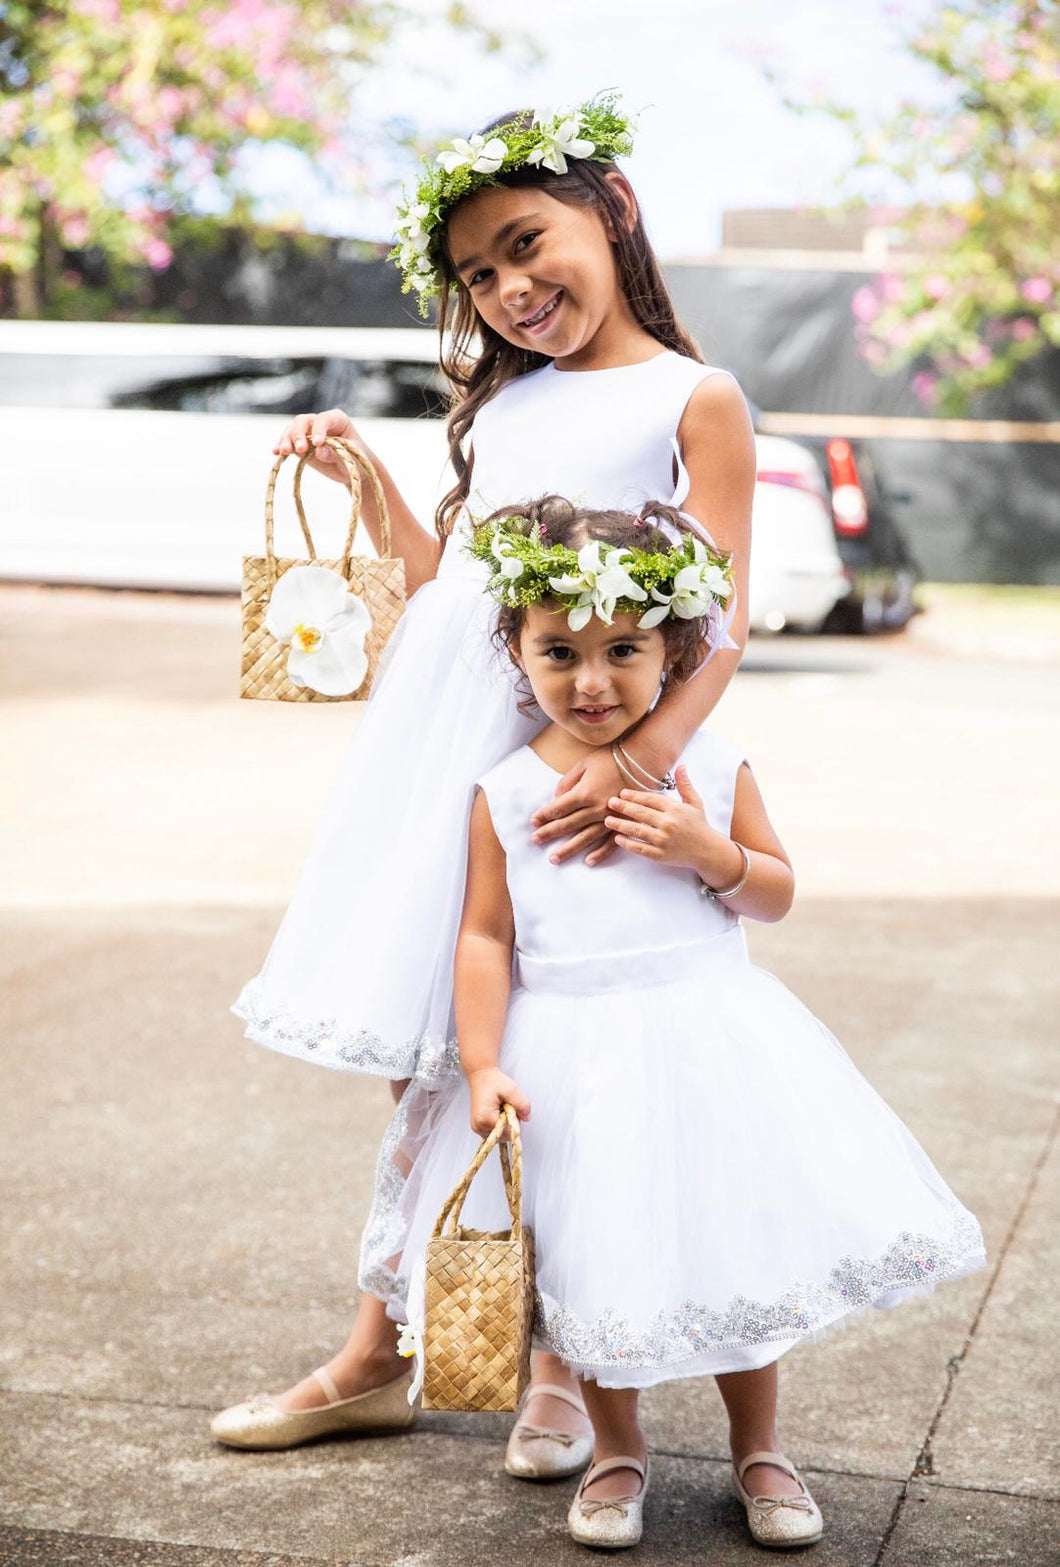 White Flower Girl Dress, Flower Girl Dresses in white, White Girl Dress